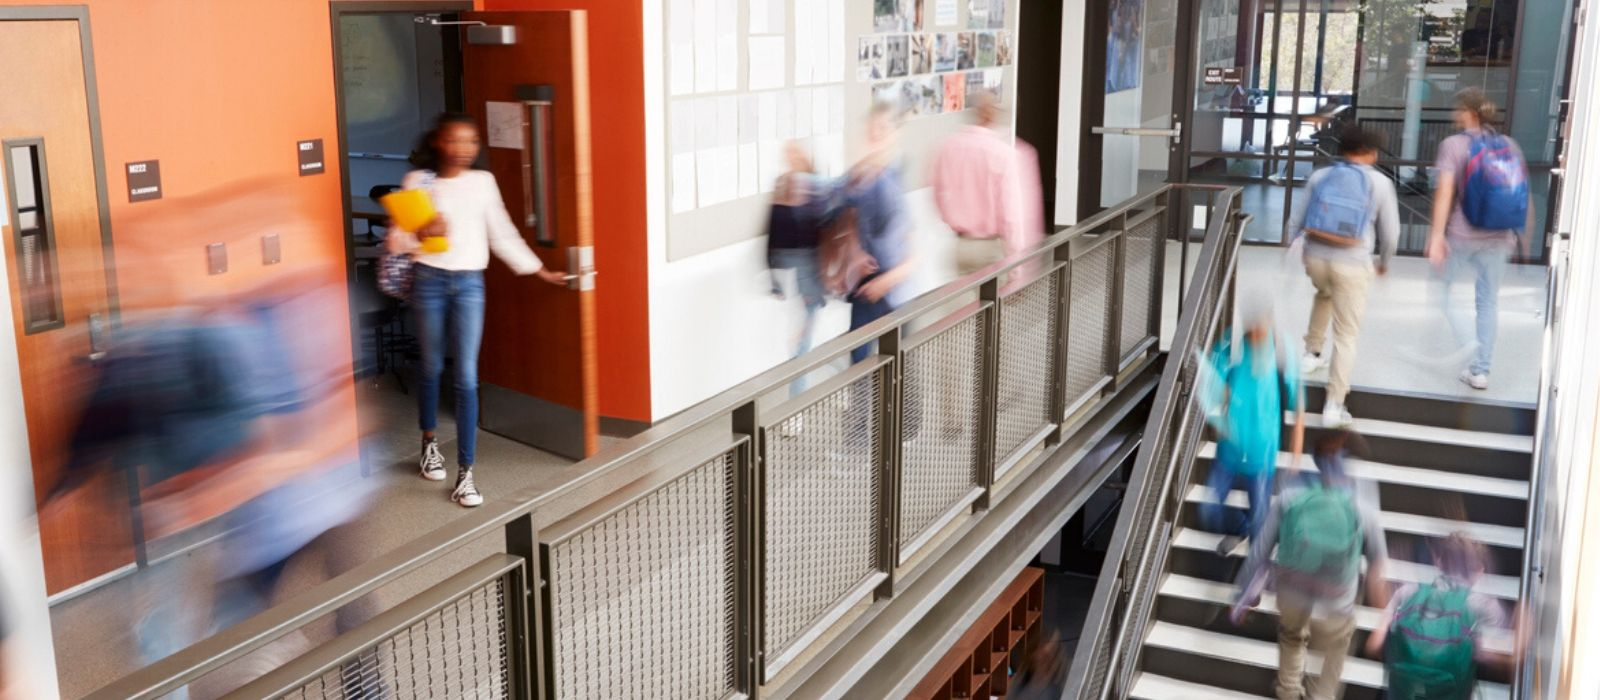 A busy university hallways filled with blurred images of students and professors.